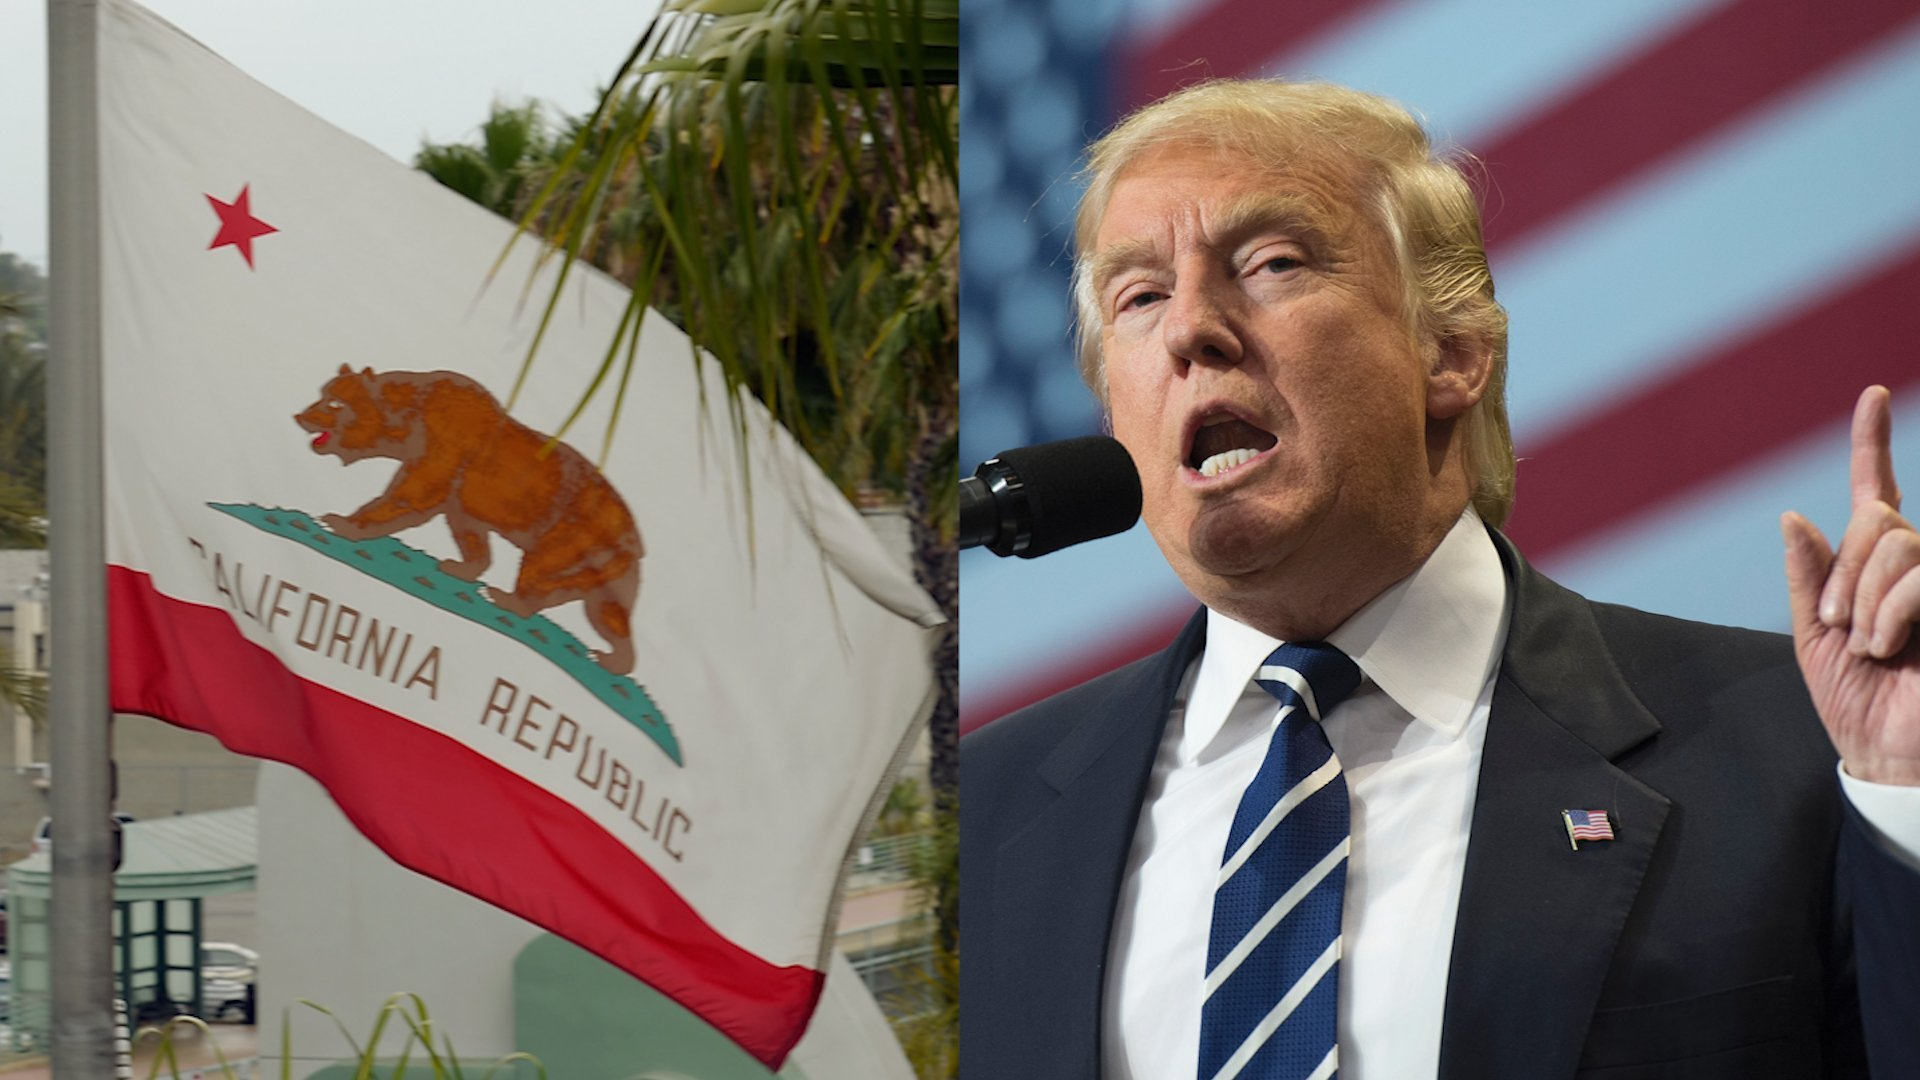 Trump's California trip marked by pair of clashes